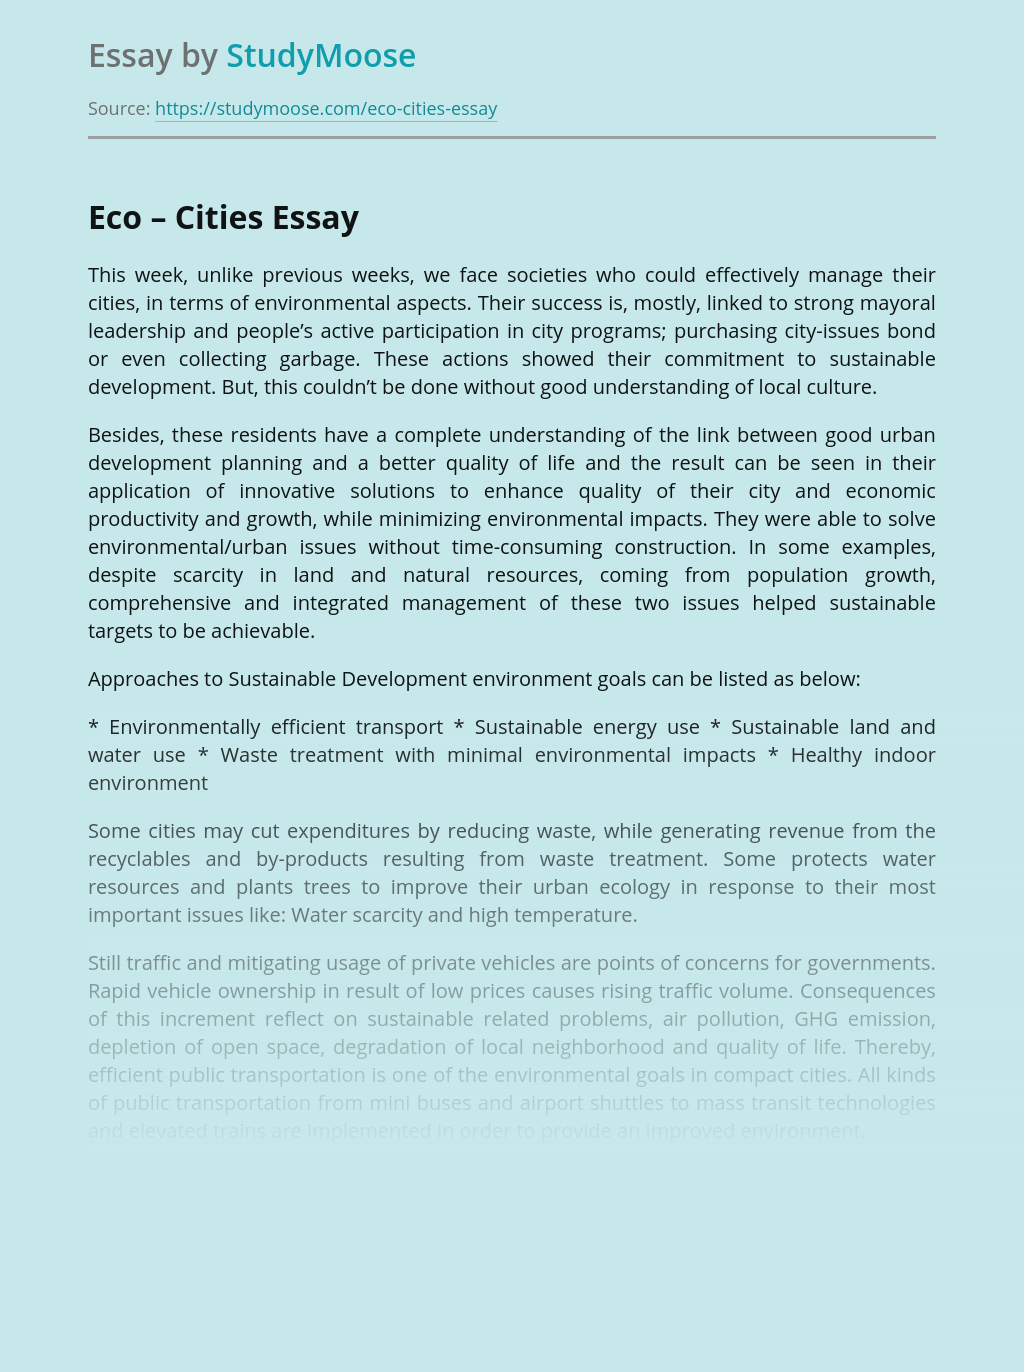 Eco-innovations in Designing Eco-cities